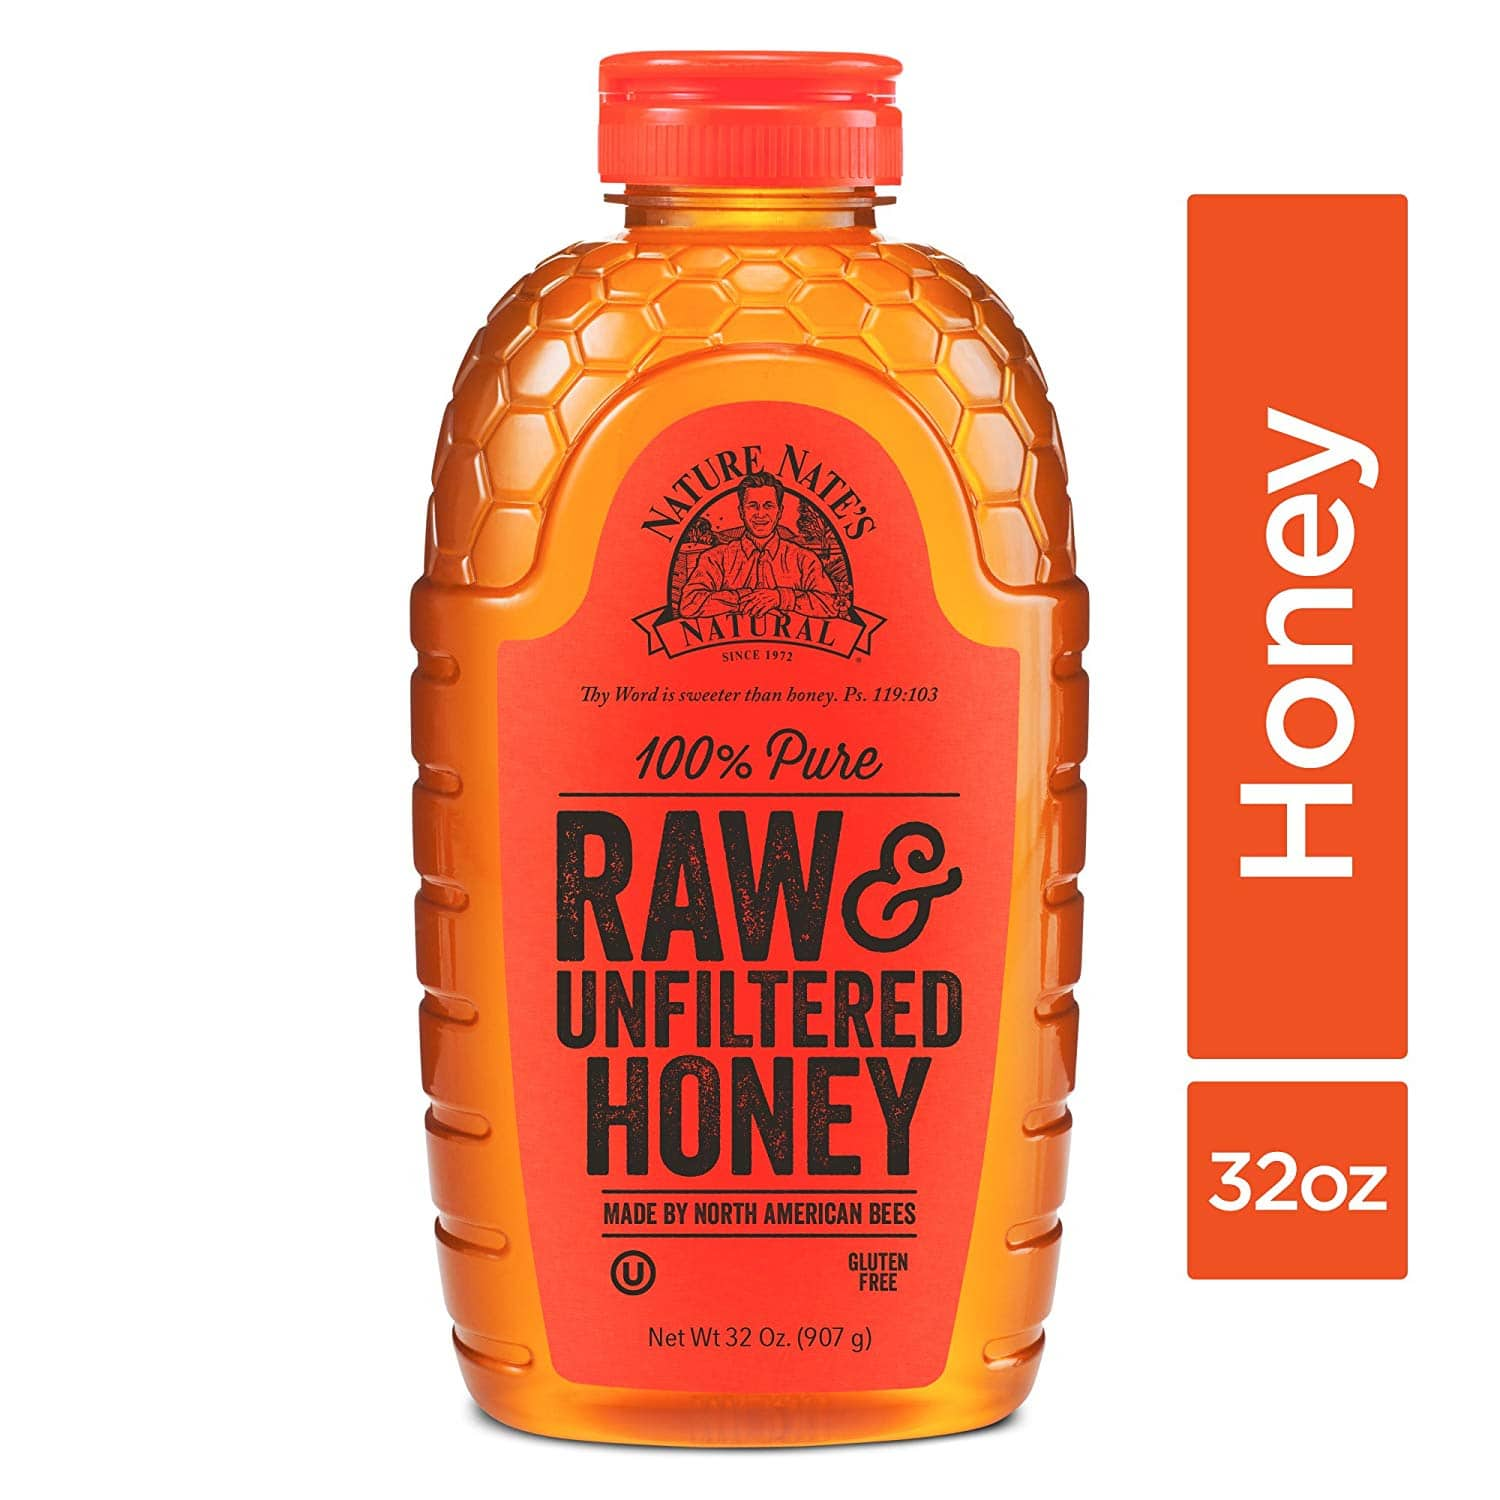 Nature Nate's 100% Pure Raw & Unfiltered Honey; 32-oz. Squeeze Bottle; Certified Gluten Free and OU Kosher Certified (ADD-ON ITEM) $7.84